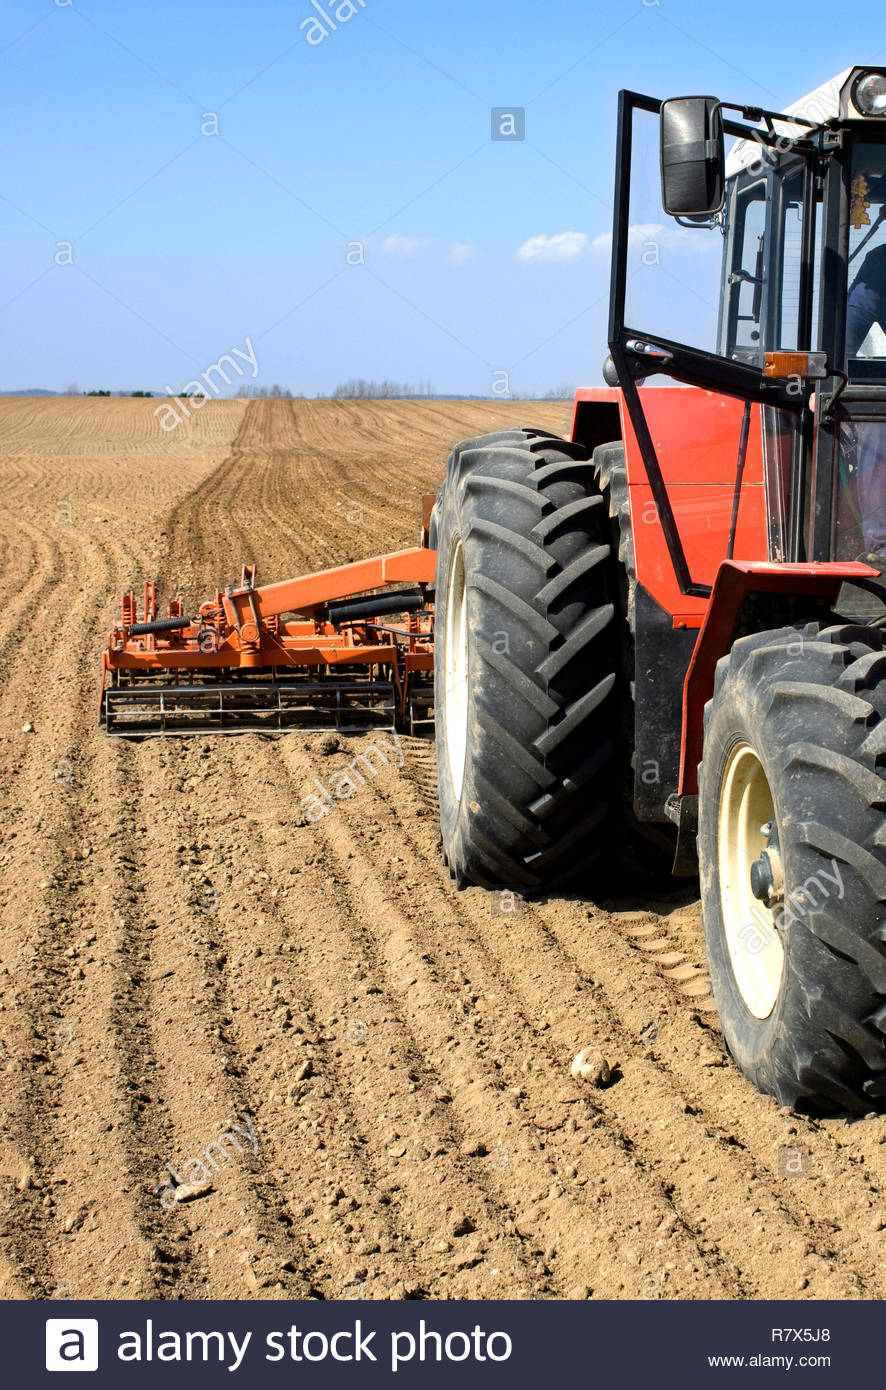 Tractor prepares spring field for seeding. Driver in cabine. Stock Photo